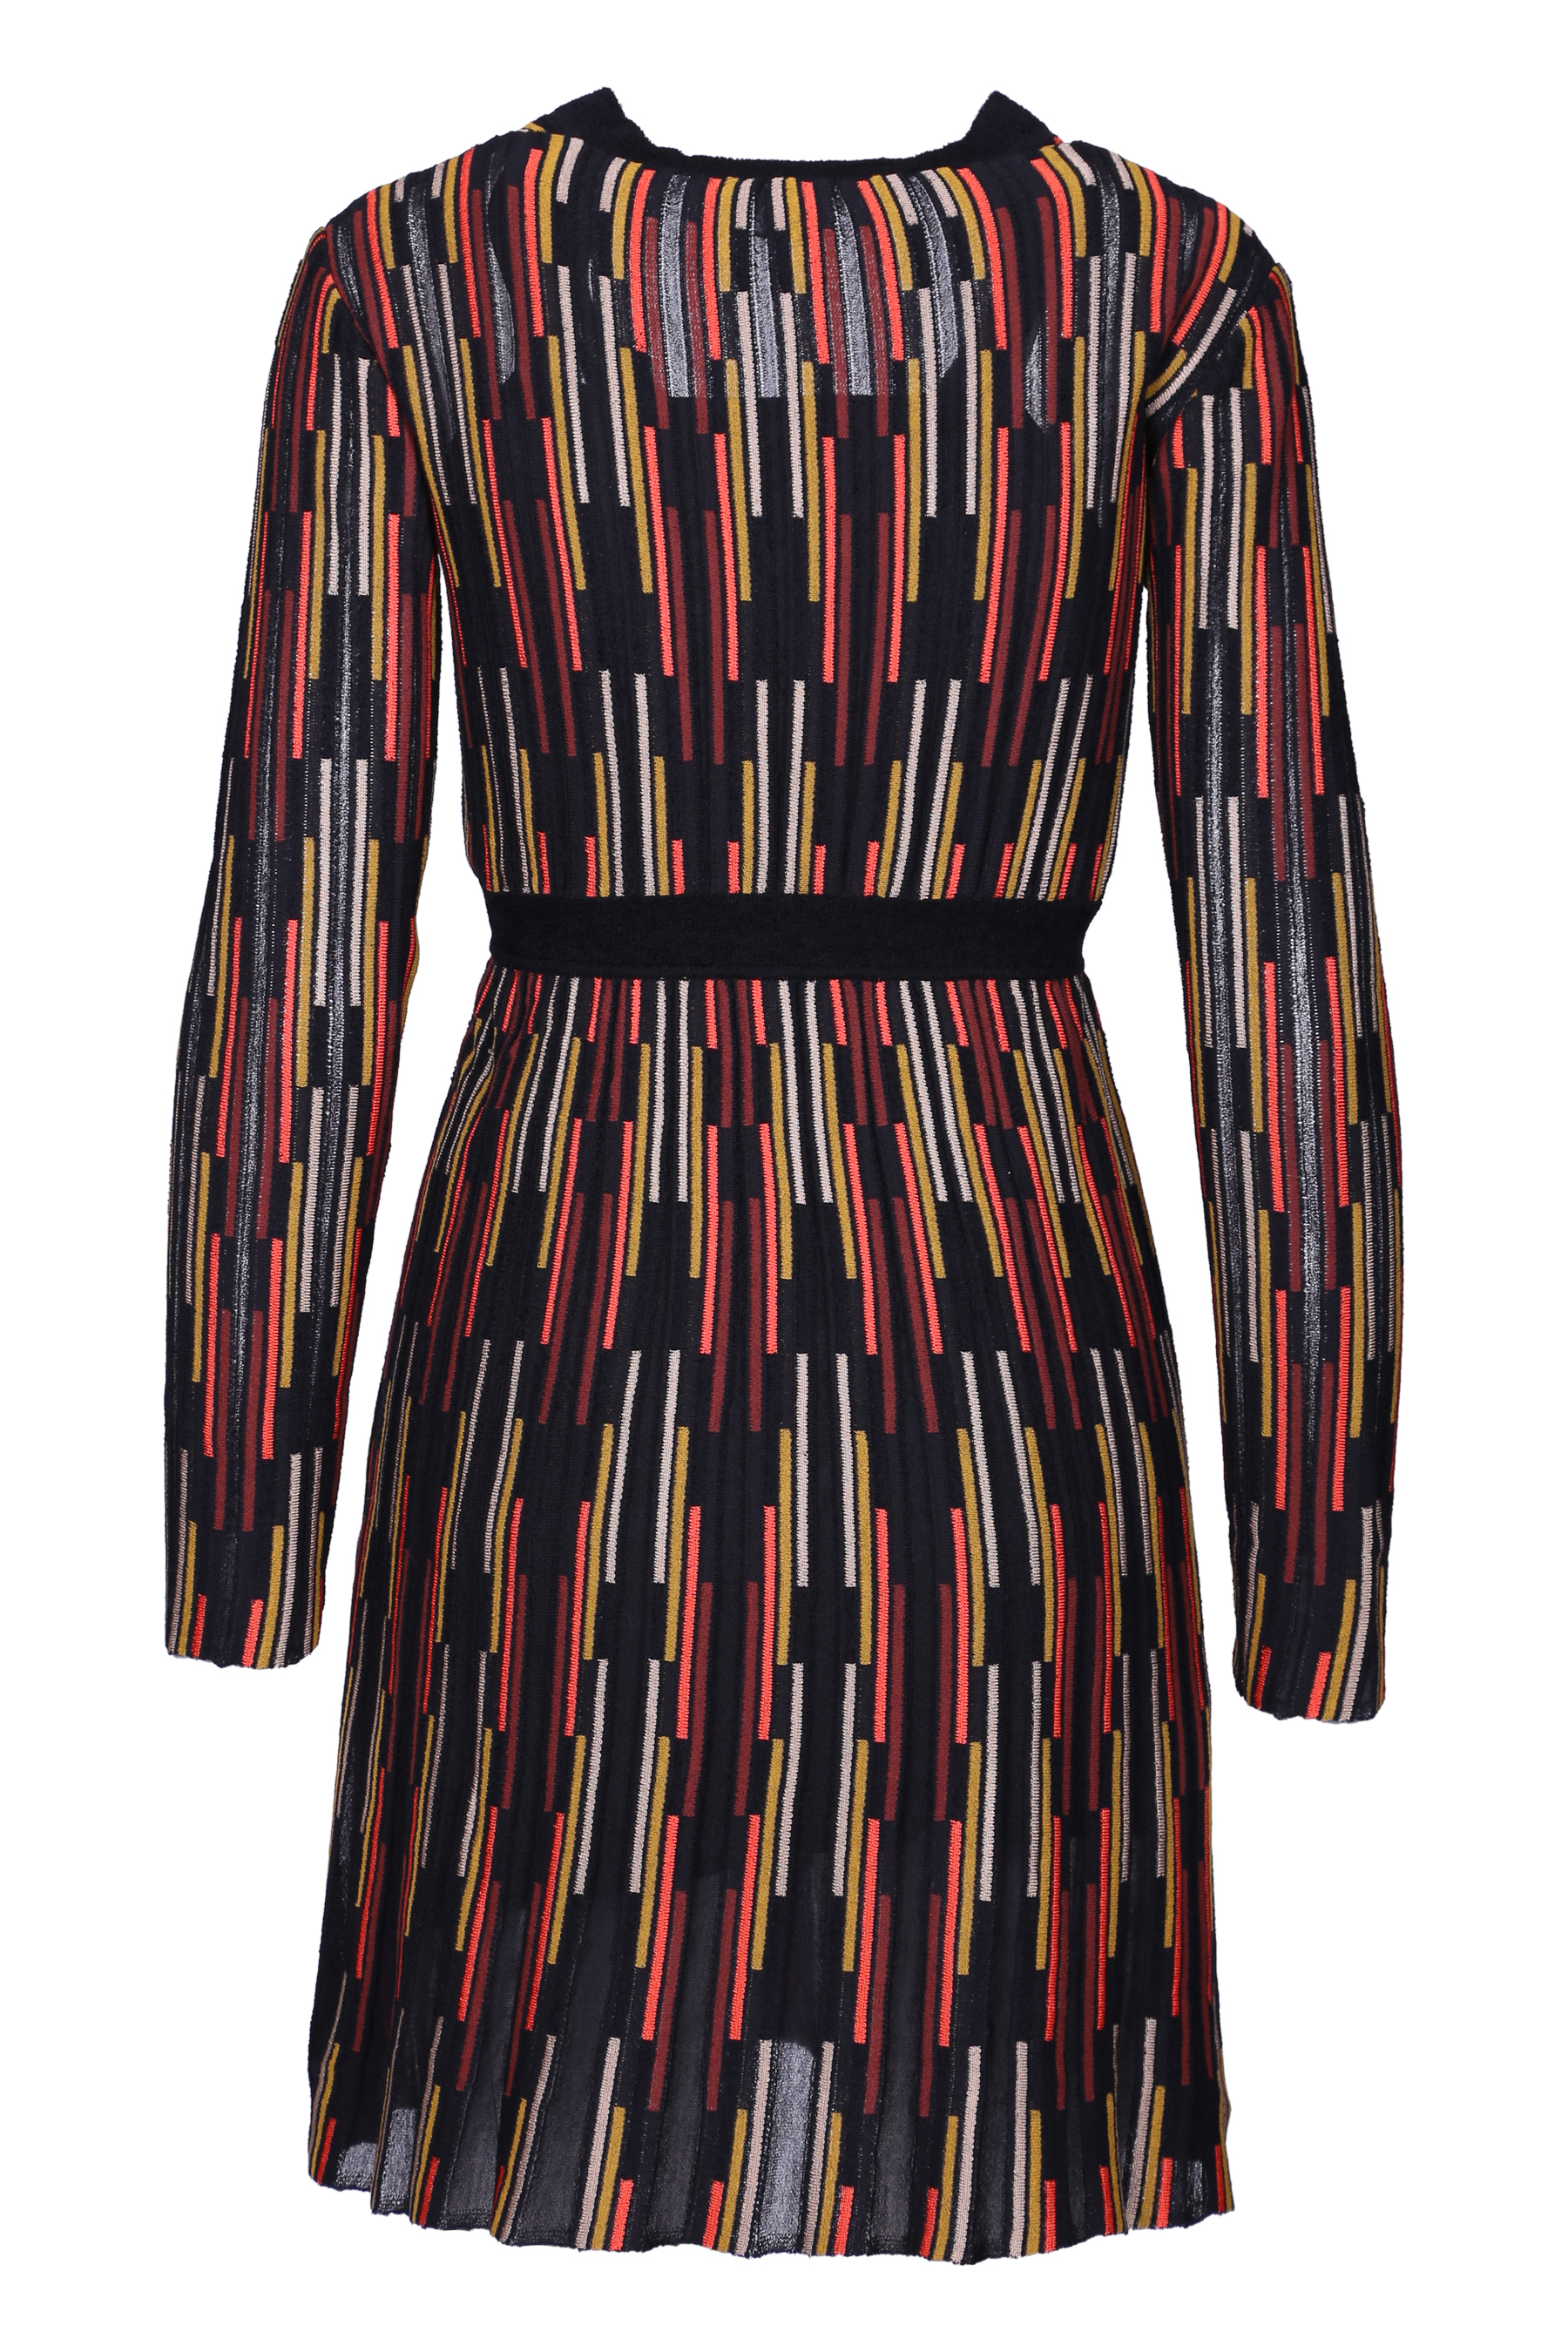 DRESS WITH CONTRASTED LINES M MISSONI |  | 2DG002152K003AS906S